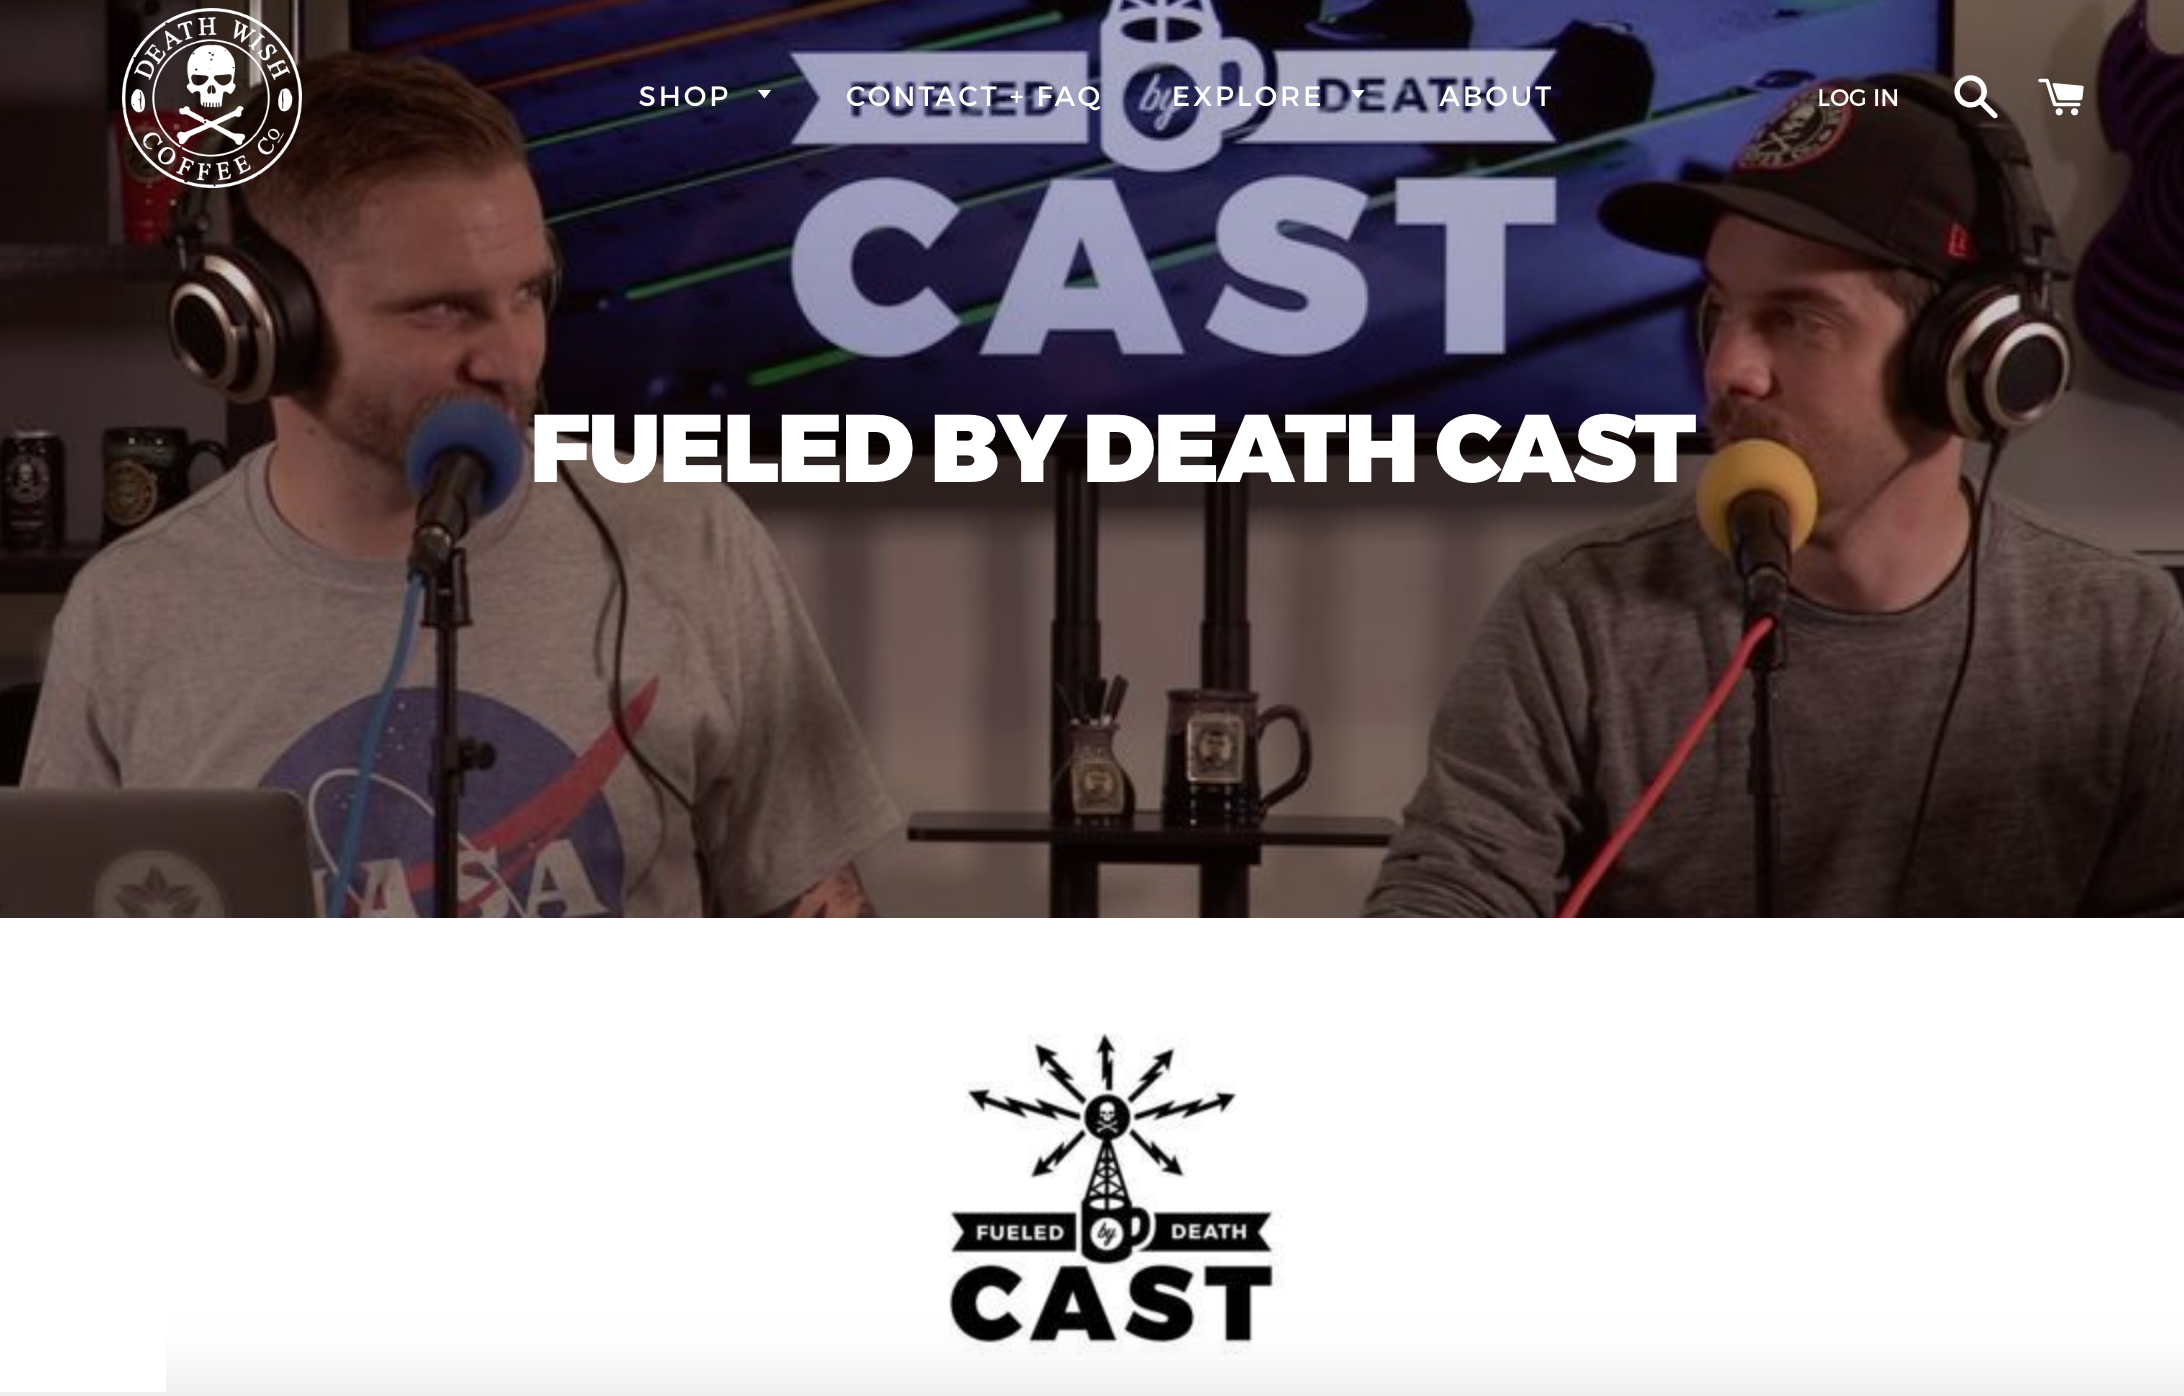 fueled by death cast